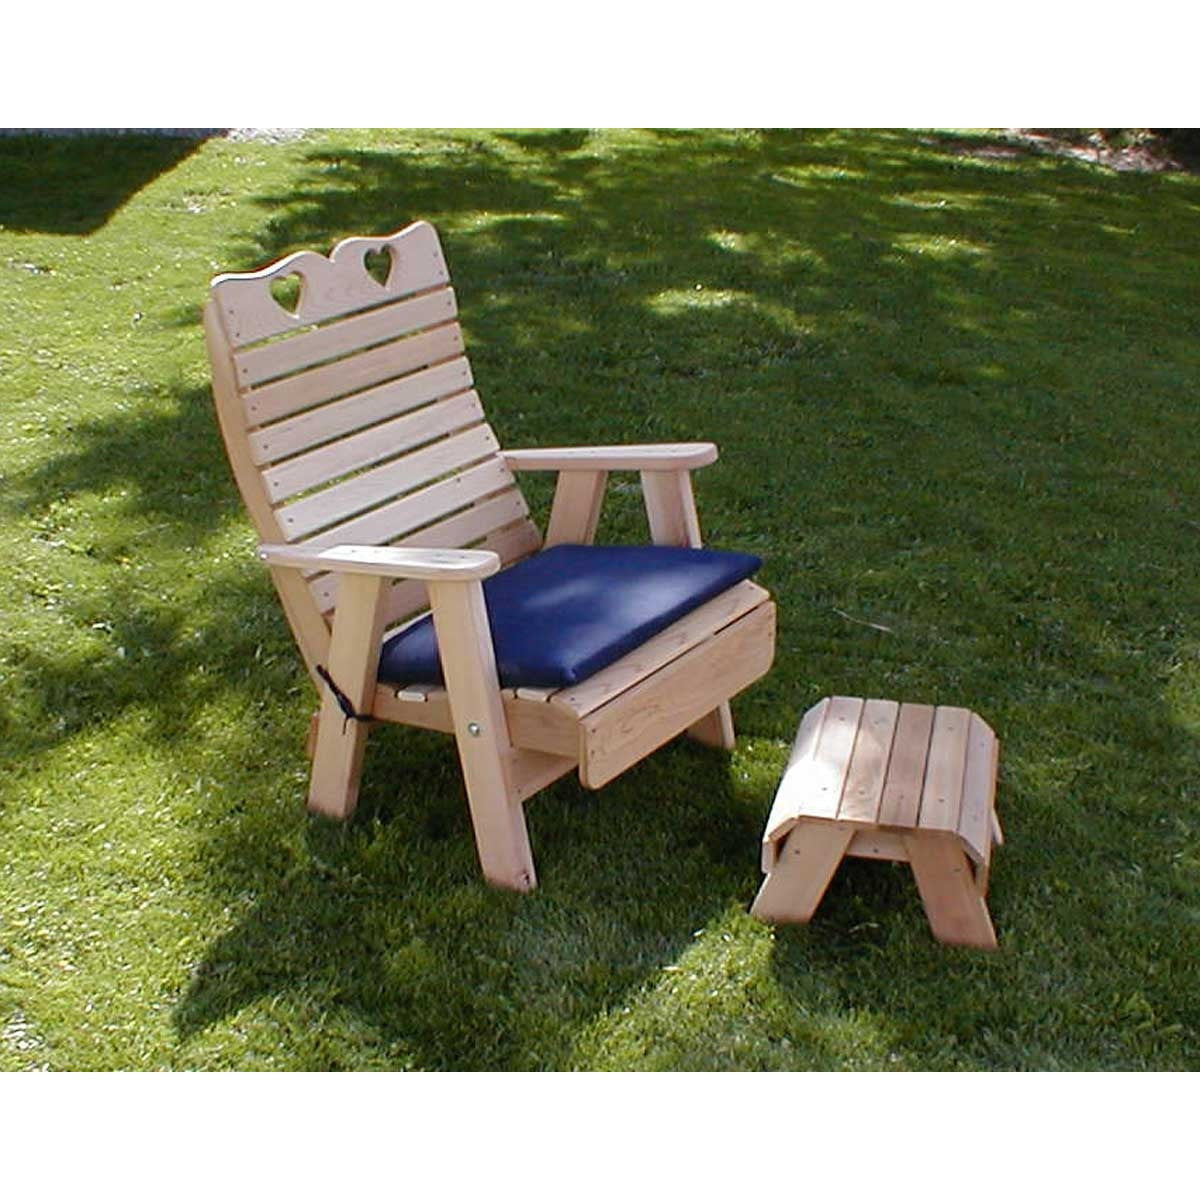 Creekvine Designs Cedar Patio Chair & Footrest Set - Swings and More